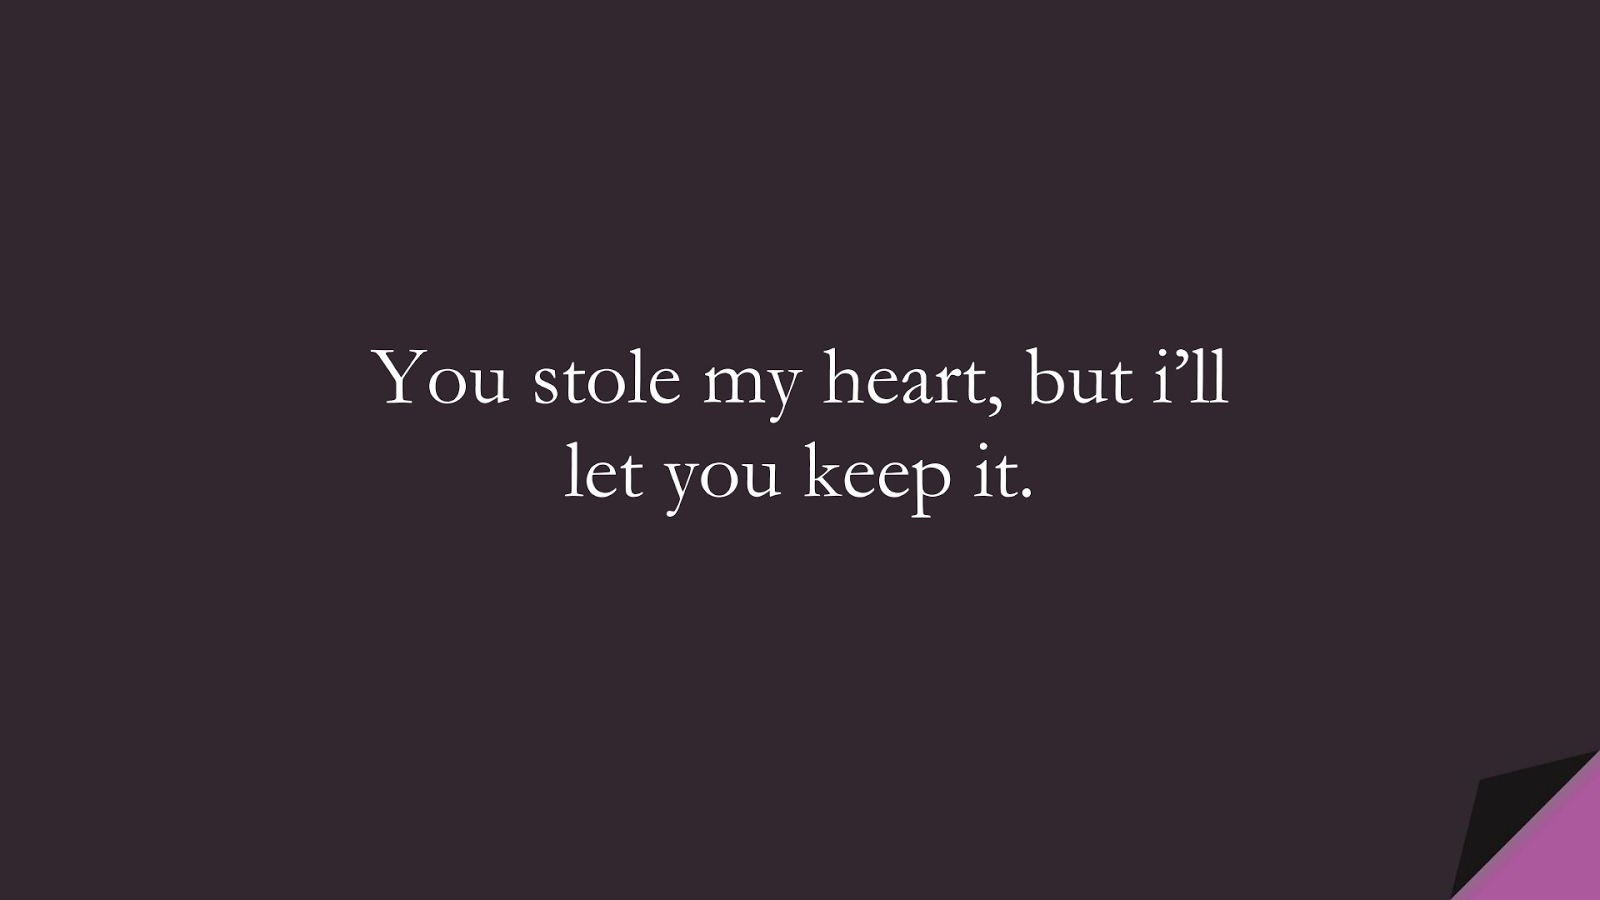 You stole my heart, but i'll let you keep it.FALSE